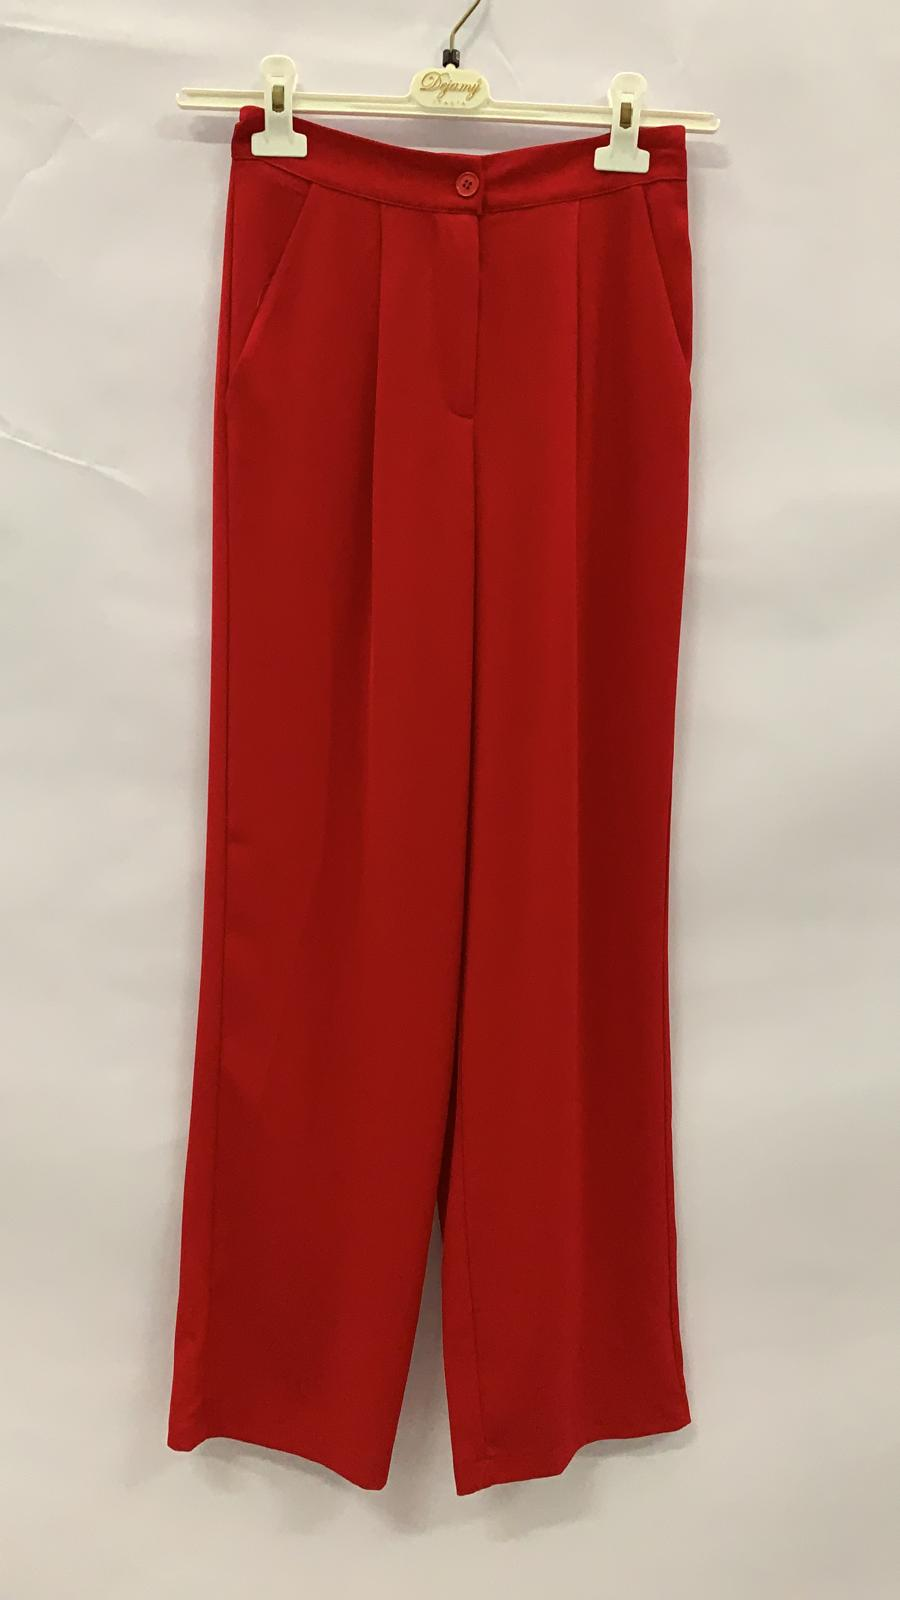 PANTALONE ROSSO T4